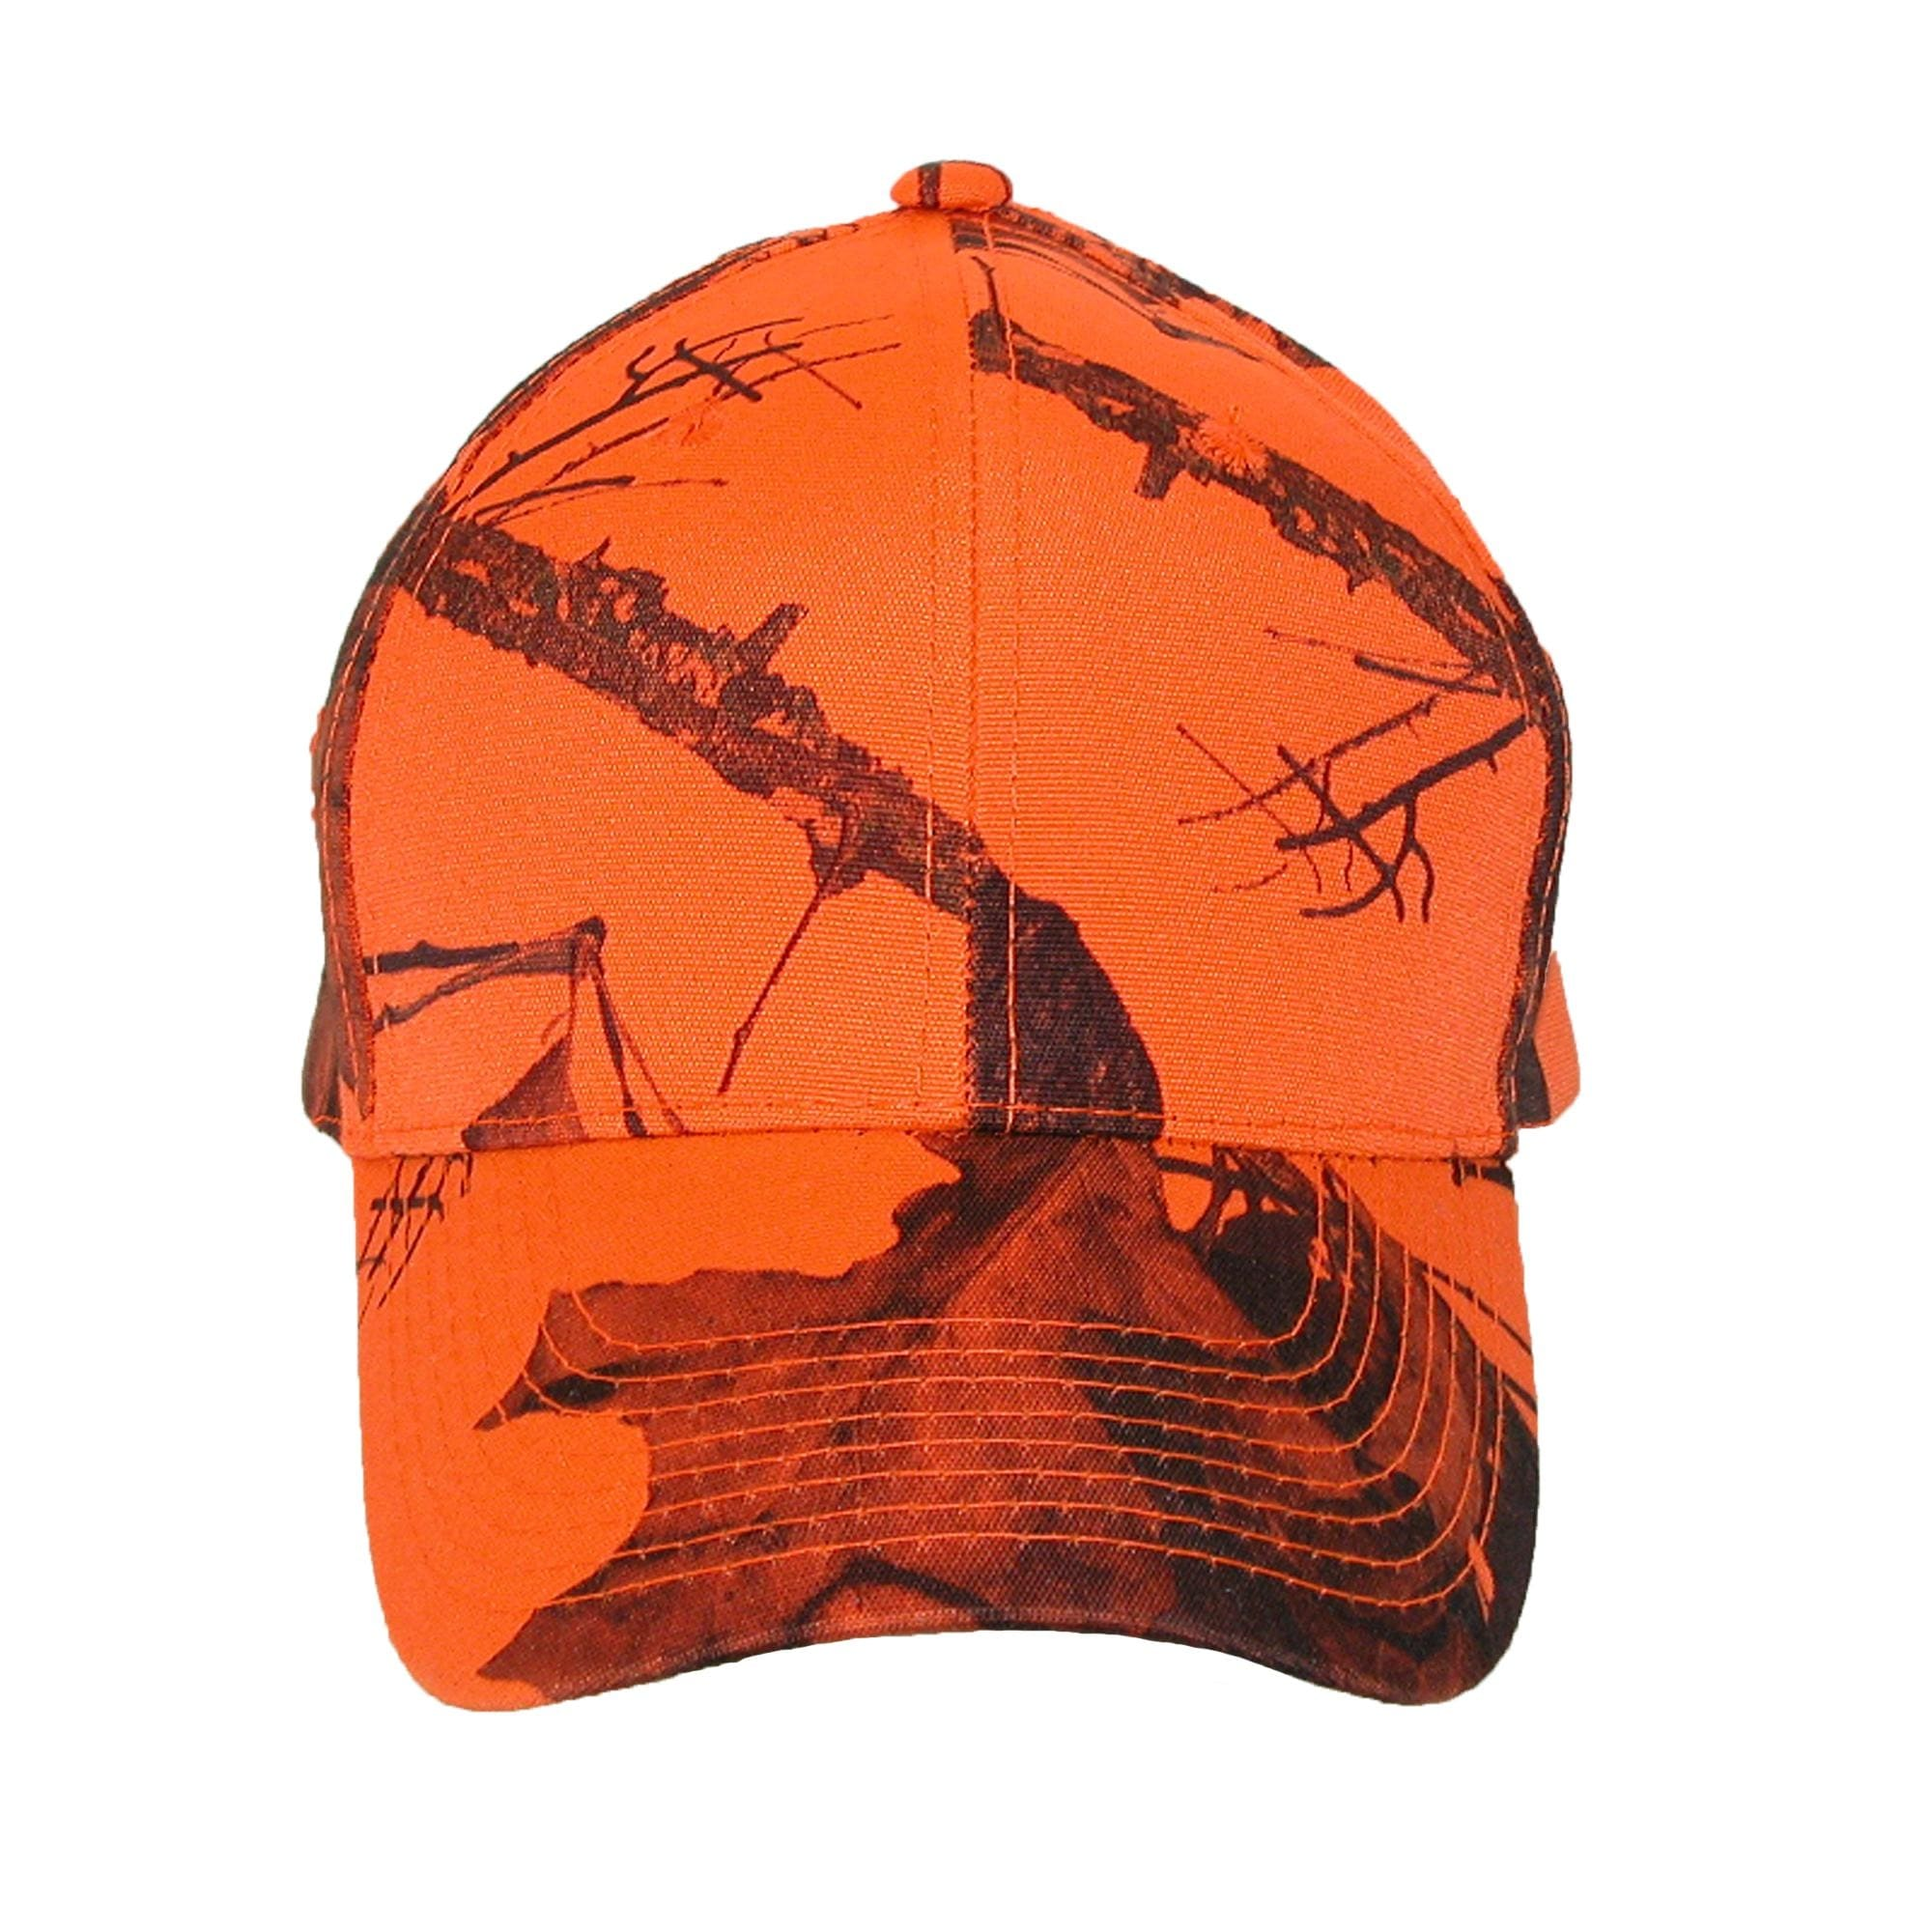 b1521402e Shop CTM® Men's Mossy Oak Break Up Blaze Orange Baseball Hat - Free  Shipping On Orders Over $45 - Overstock - 14281743